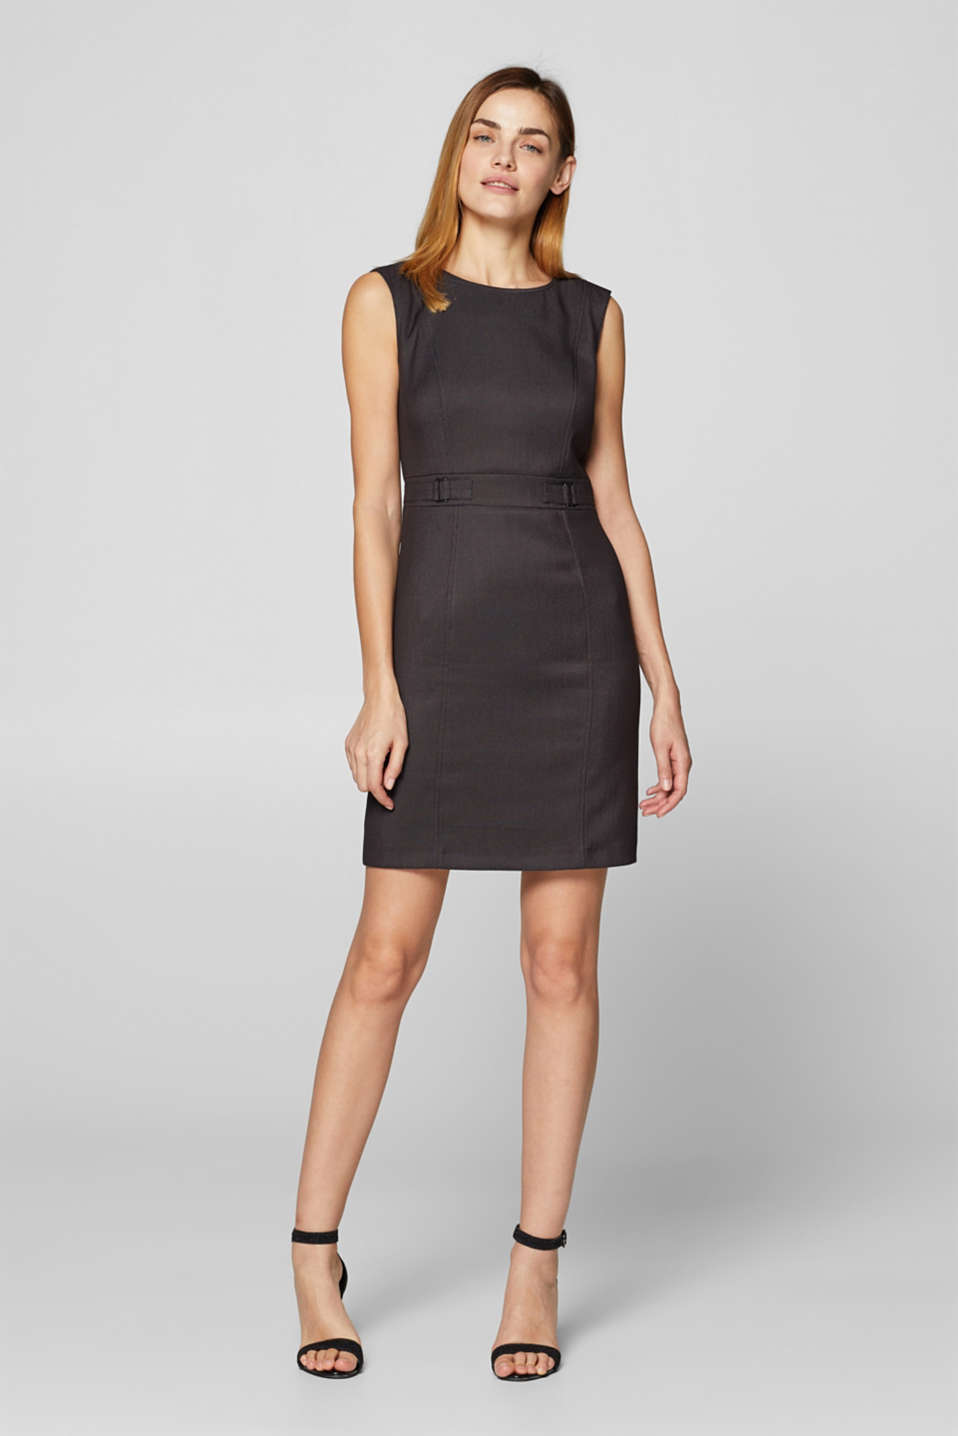 Esprit - Stretch shift dress with eye-catching side buckles